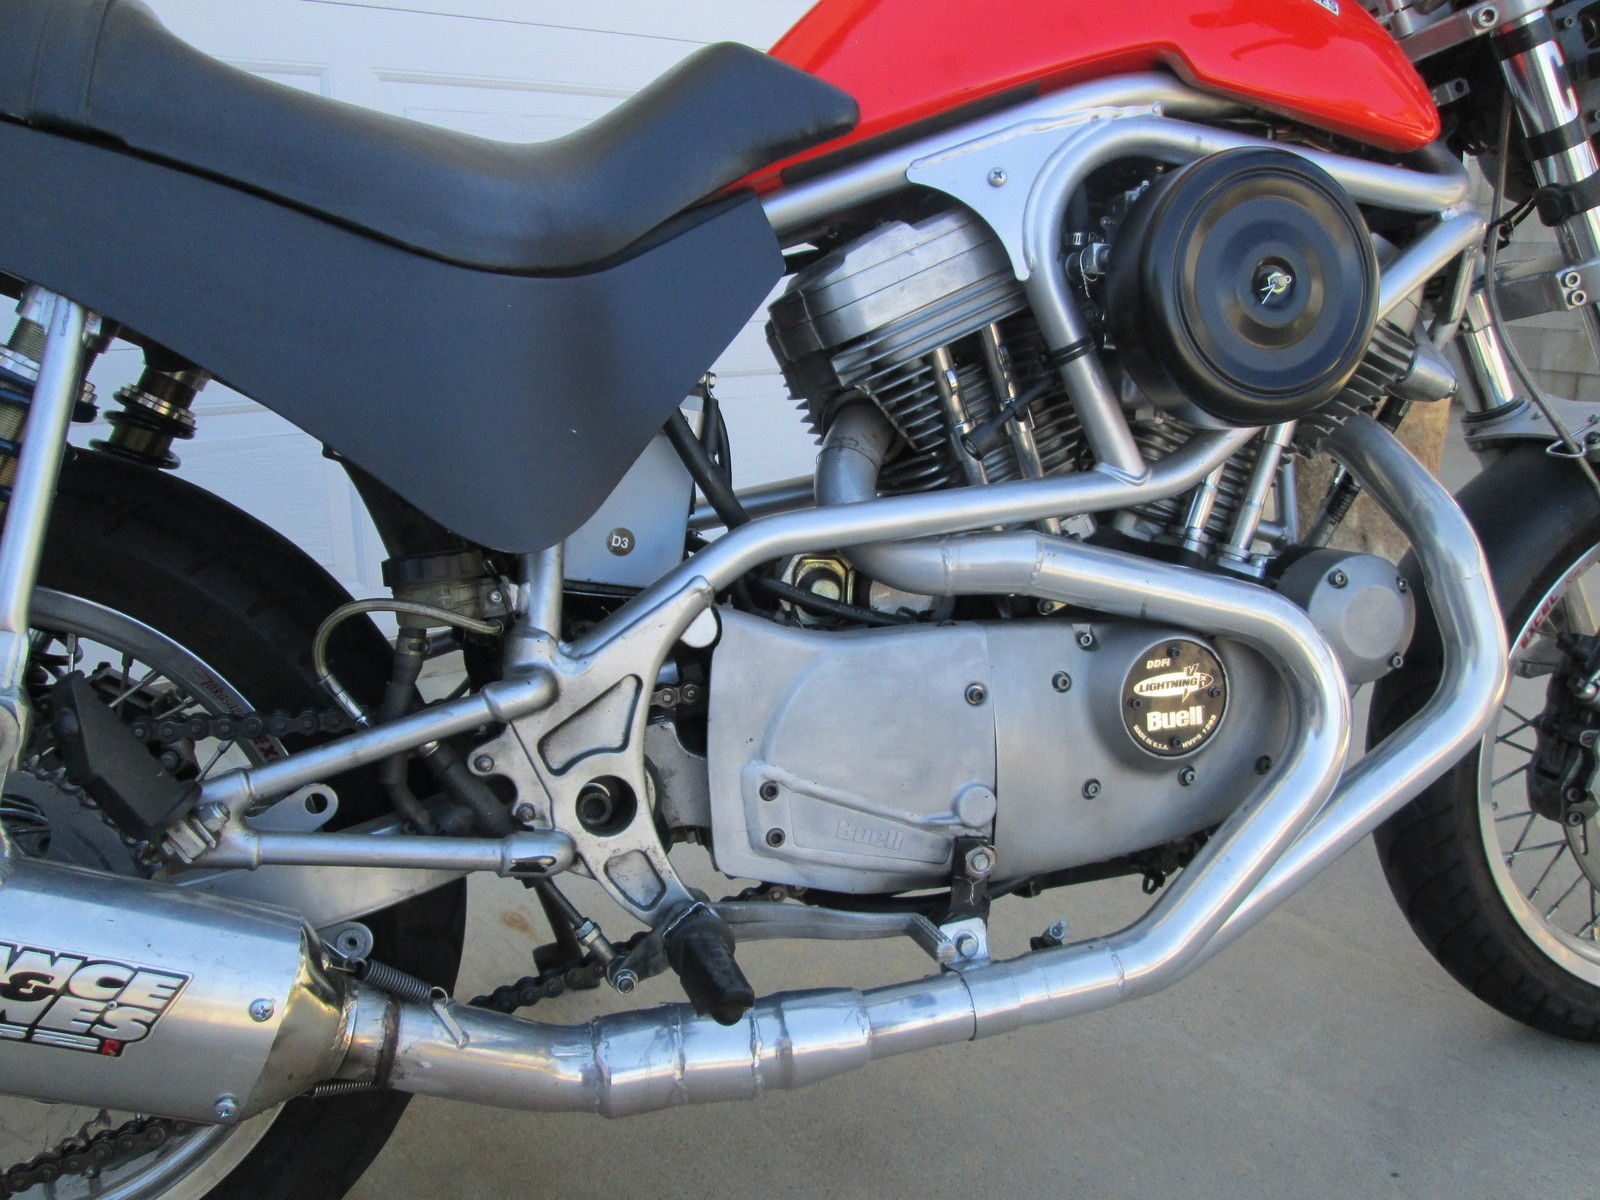 Buell M2 Cyclone 2001 with conventional rear dual shocks